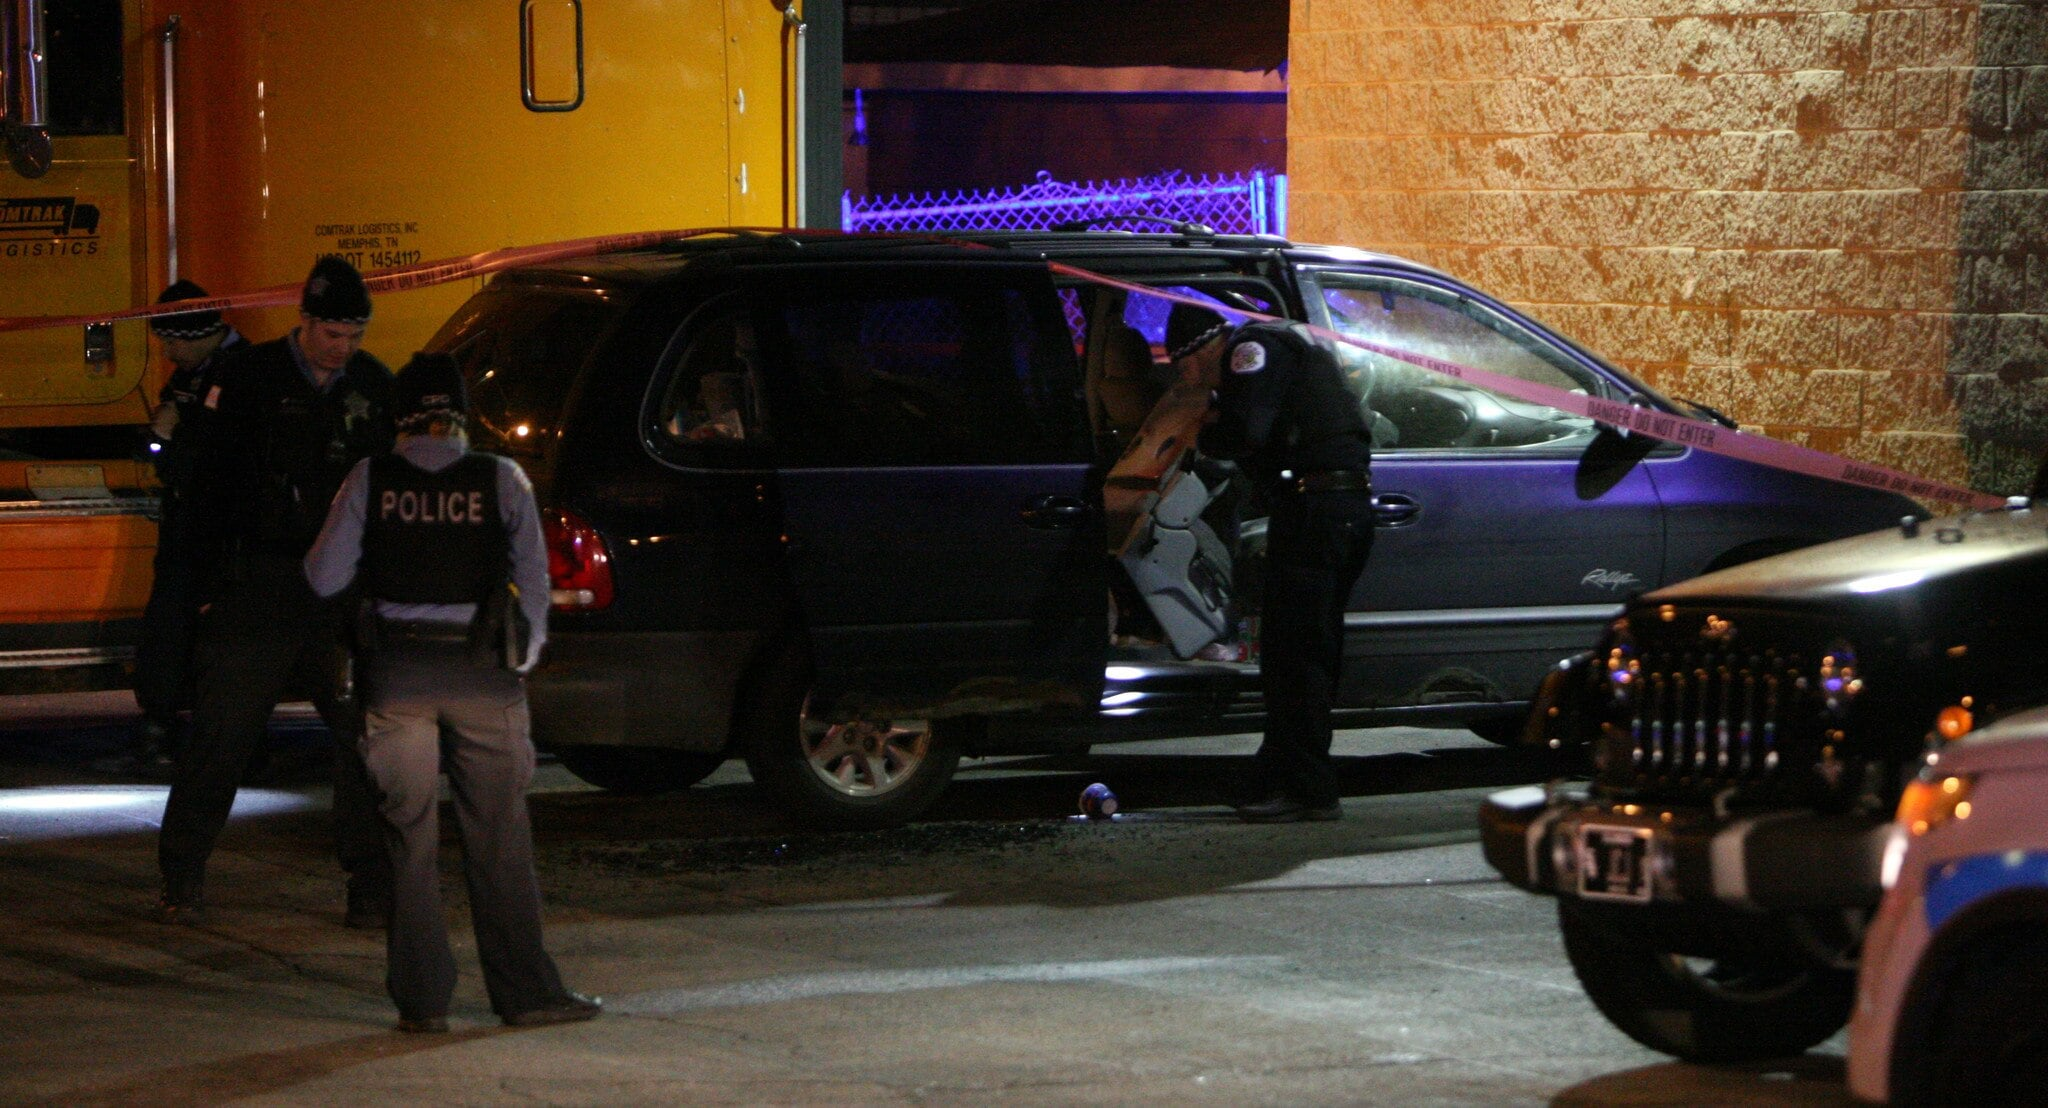 Chicago Police search a vehicle for evidence in the Parkway Gardens neighborhood of Chicago (Photo: Chicago Tribune)